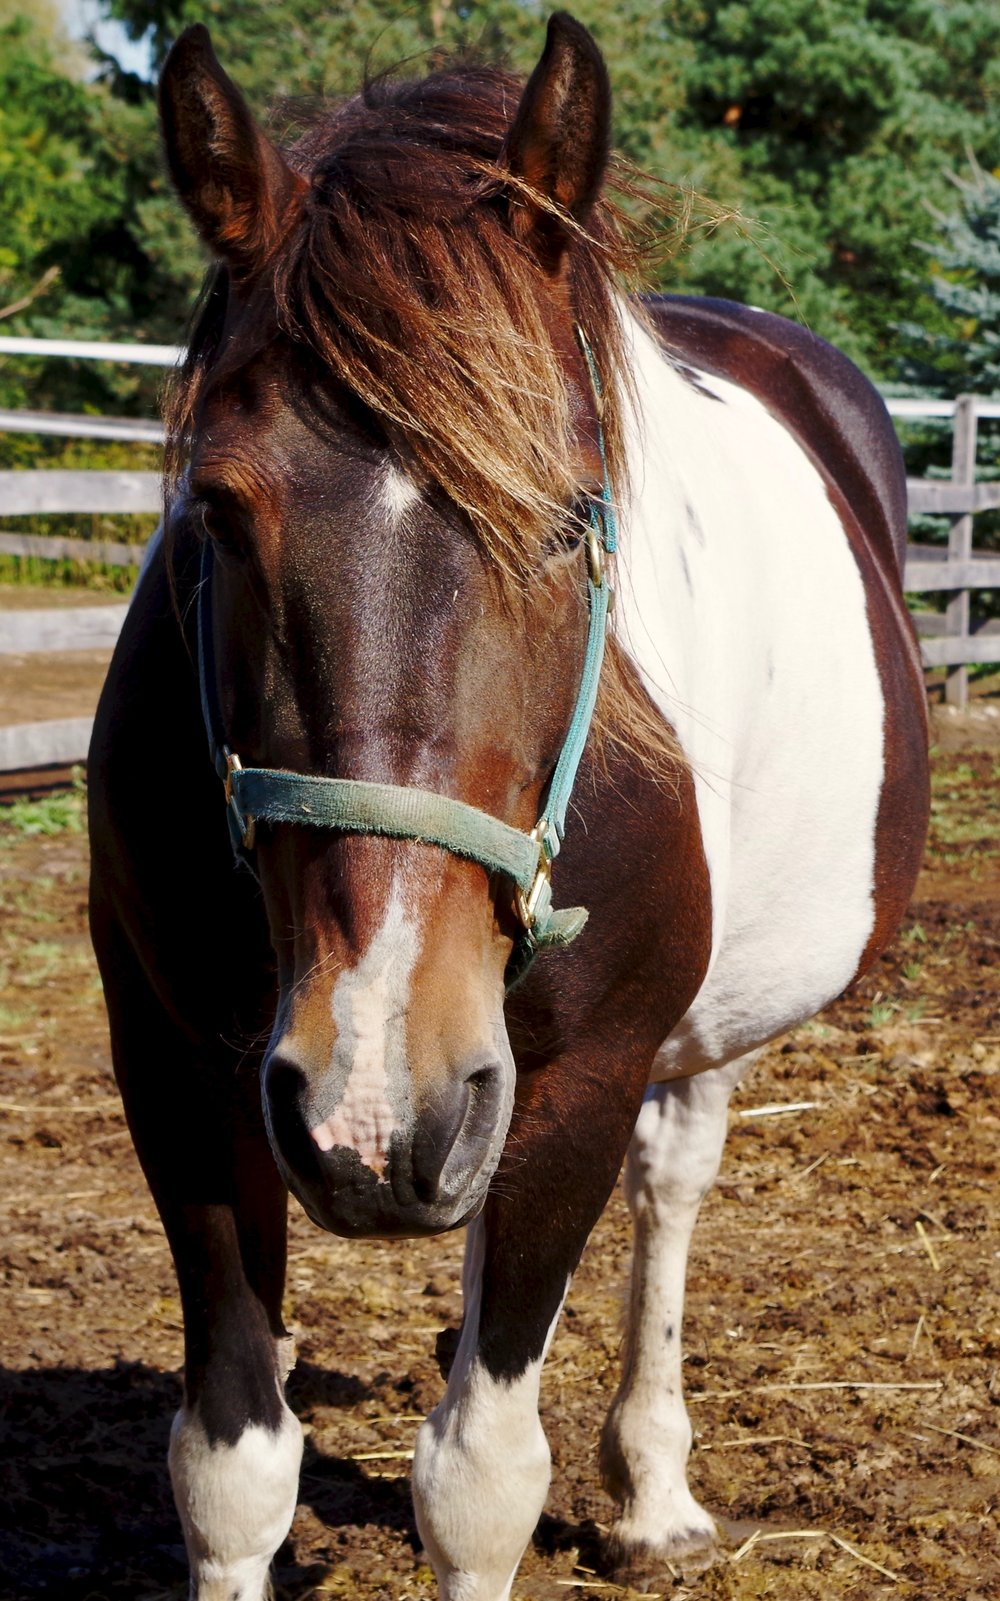 Lola - Half Sponsor: Barbara Lamping, MDBreed: Registered Spotted Draft HorseLola was purchased and donated to the farm for use in our Veterans program and she is also often used for therapy. She suffered a back injury a number of years ago but can once again be used lightly for riding lessons.